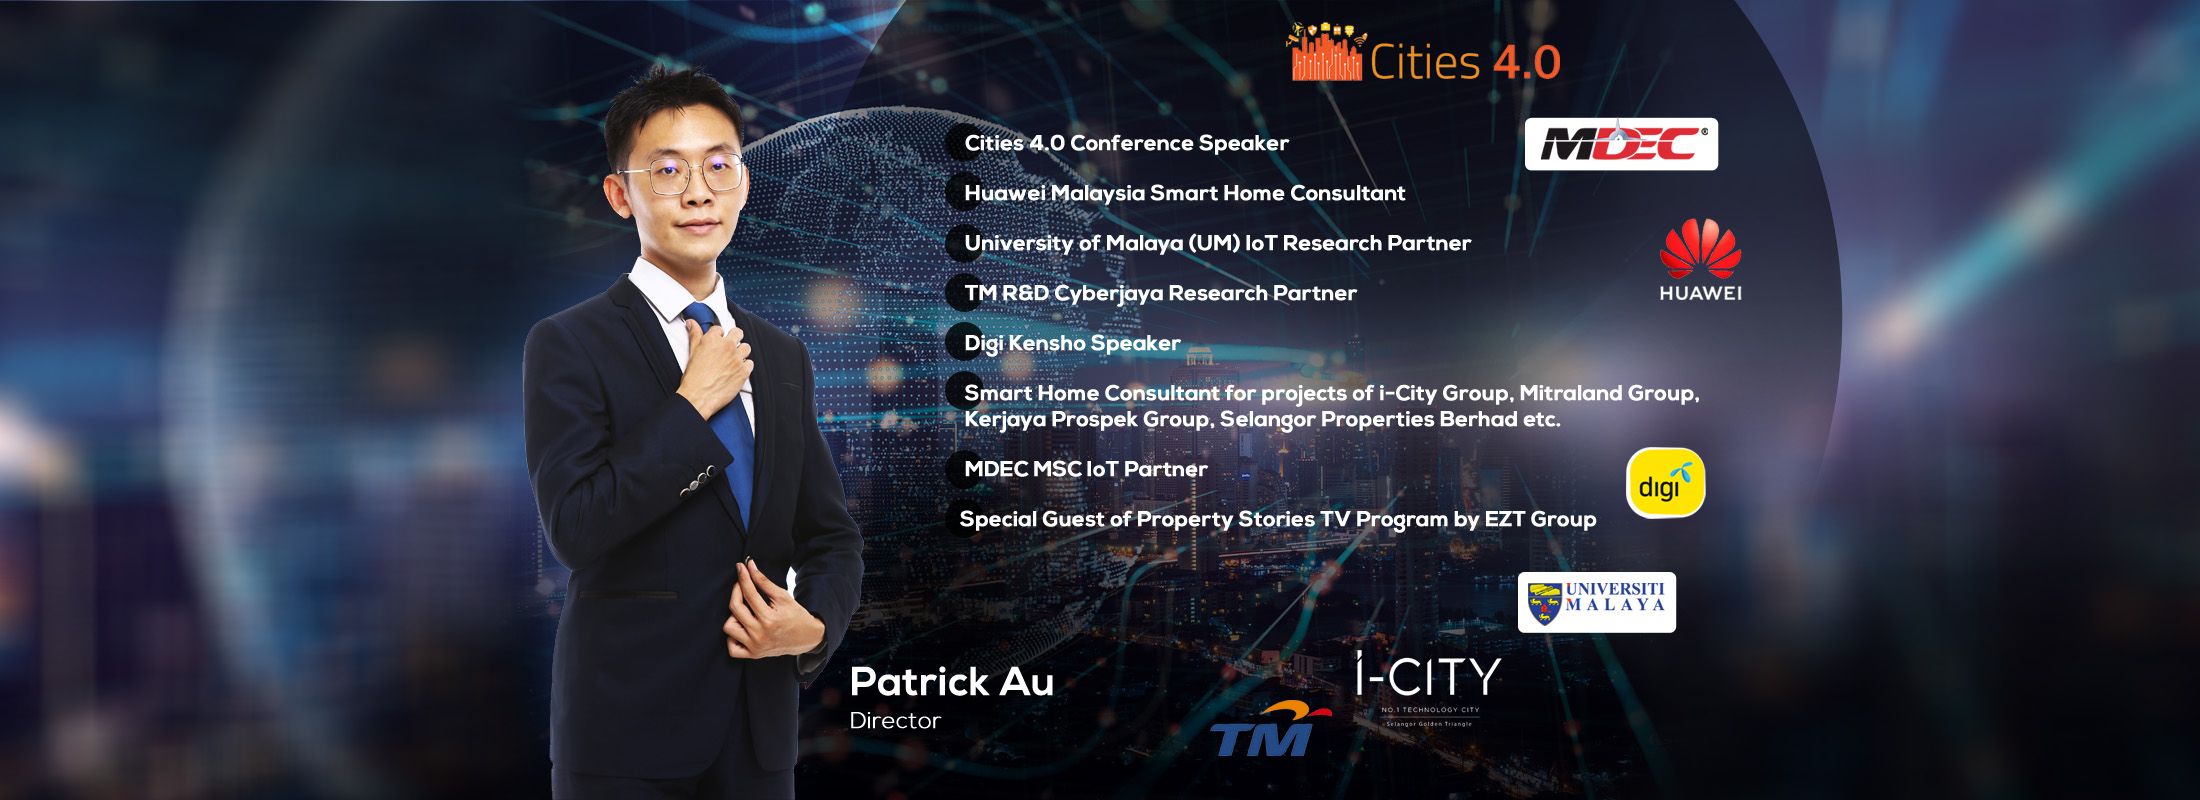 Patrick Au Project Director of VYROX - Cities 4.0 Conference Speaker, Huawei Malaysia Smart Home Consultant, University of Malaya (UM) IoT Research Partner, TM R&D Cyberjaya Research Partner, Digi Kensho Speaker, Smart Home Consultant for projects of i-City Group, Mitraland Group, Kerjaya Prospek Group, Selangor Properties Berhad etc. MDEC MSC IoT Partner and Inventor of IoT for Sports Management.